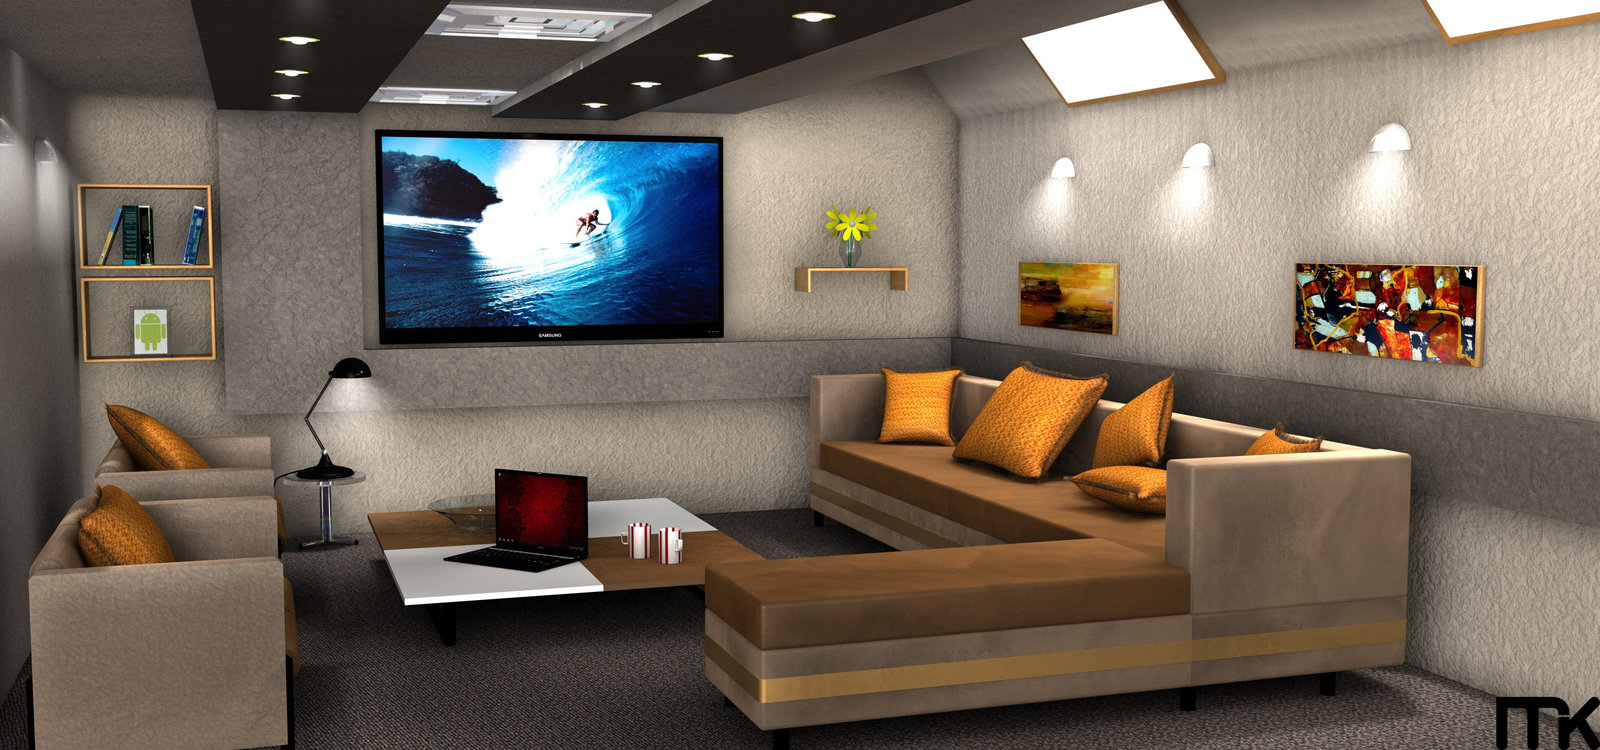 Living Room Theaters Fau | Movies Playing in Boca Raton Florida | Fau Box Office